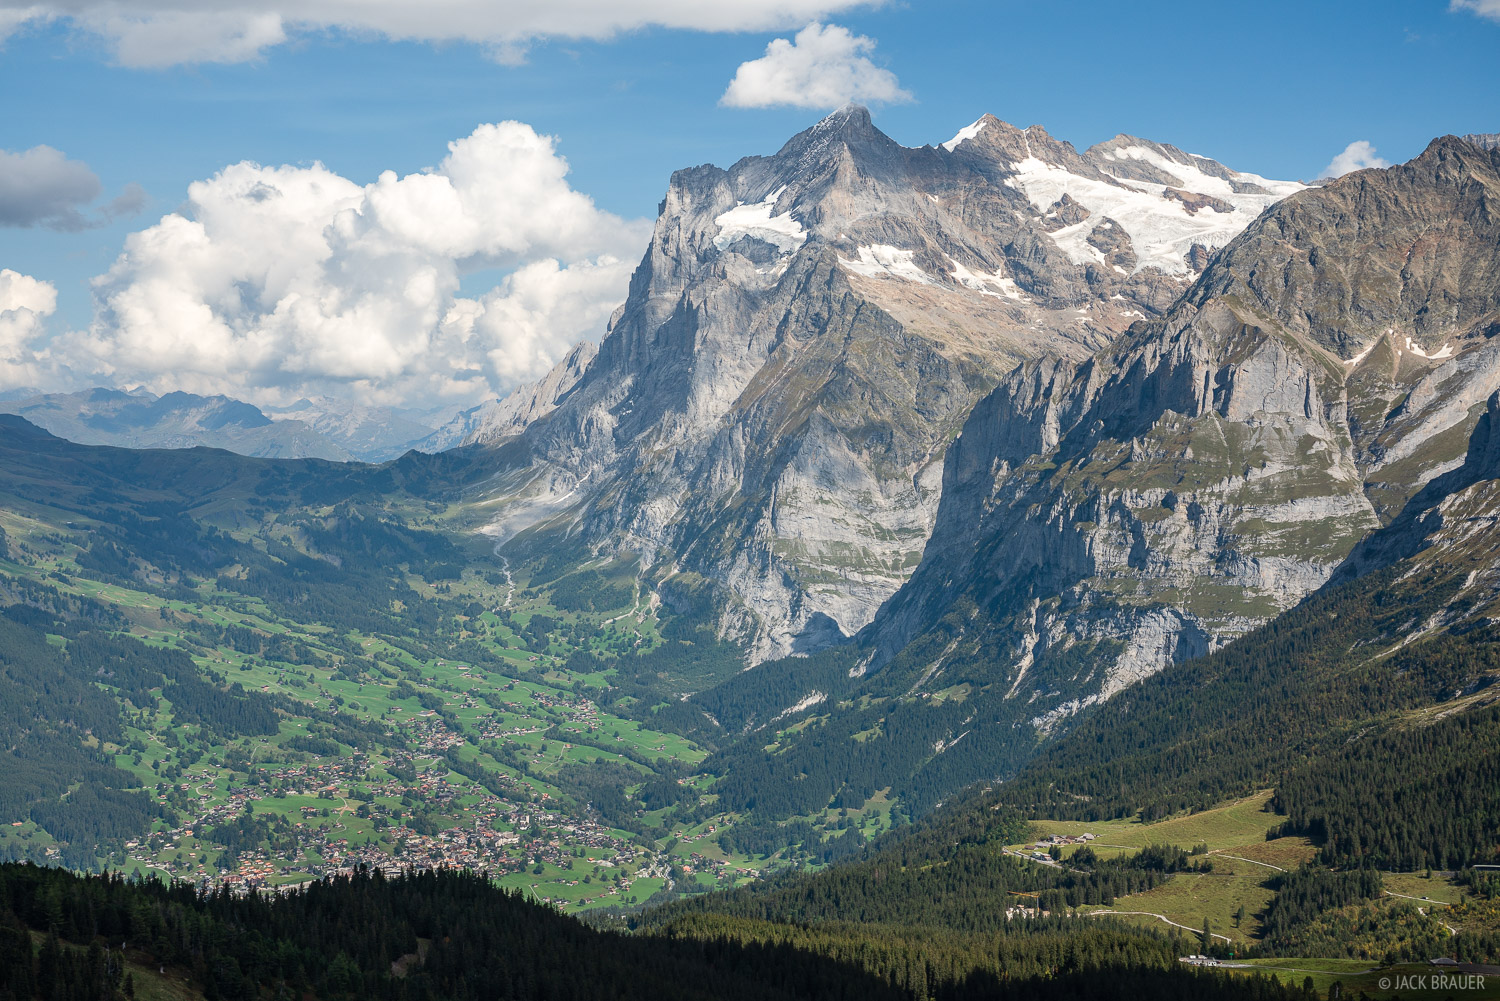 Bernese Alps, Grindelwald, Kleine Scheidegg, Switzerland, Wetterhorn, Bernese Oberland, Alps, photo